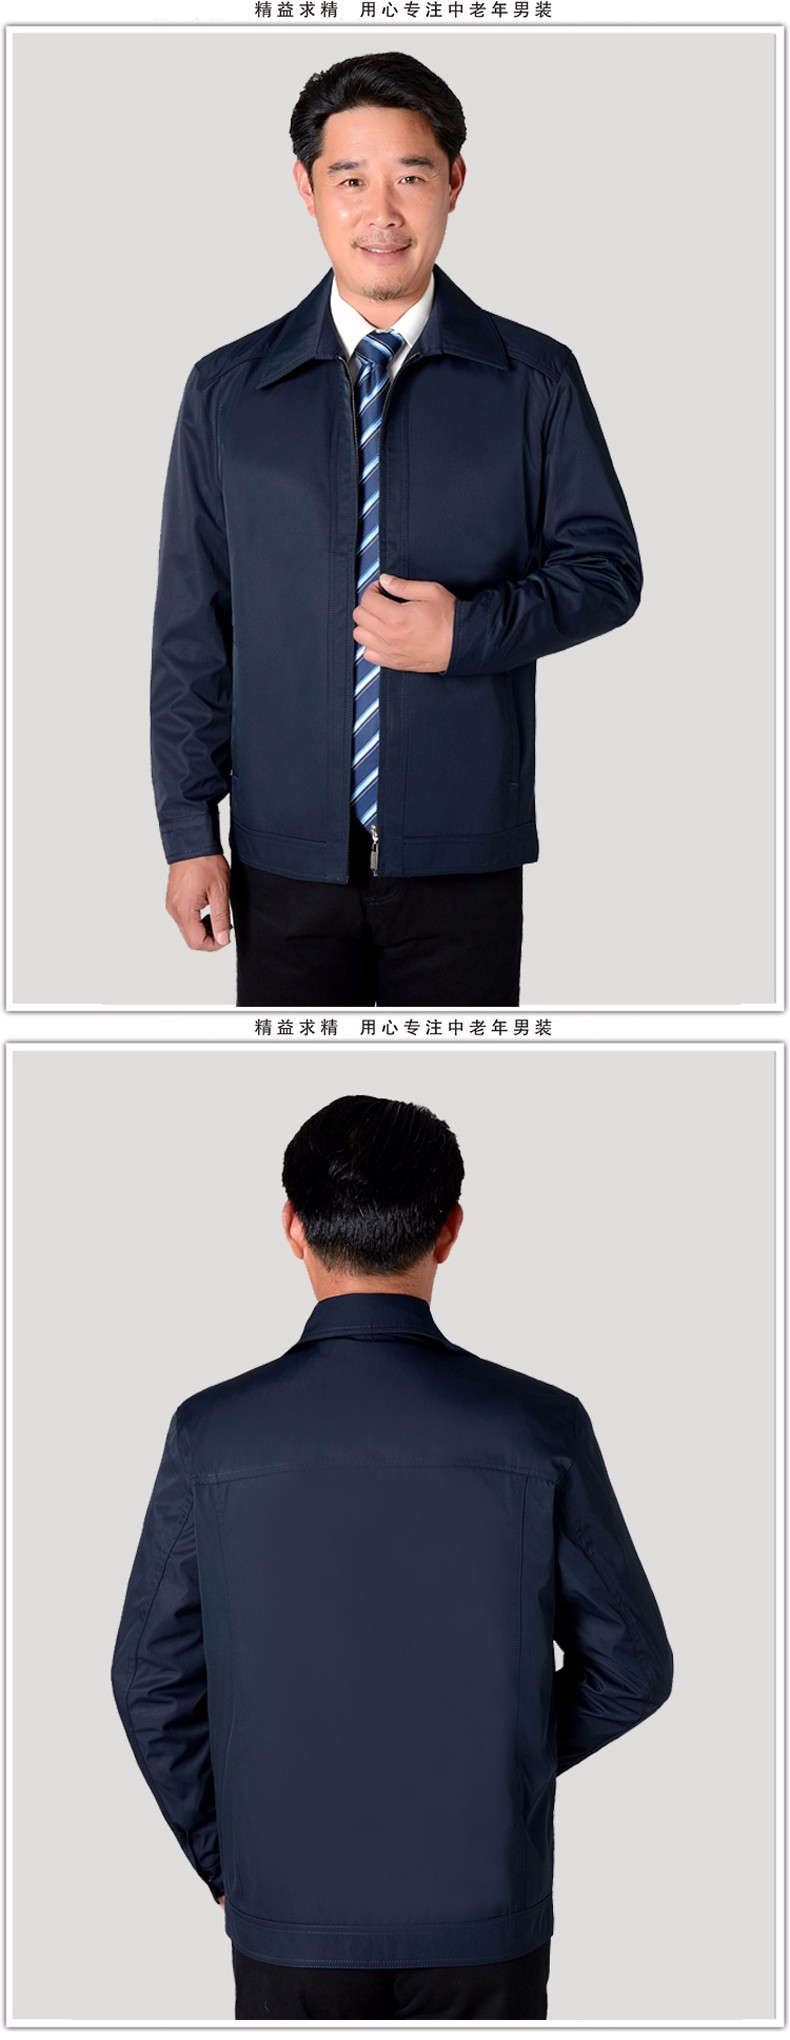 Middle Aged Men Casual Lightweight Jackets Beige Blue Coat For Mans Autumn Spring Turn Down Collar Jacket Father Garment (7)